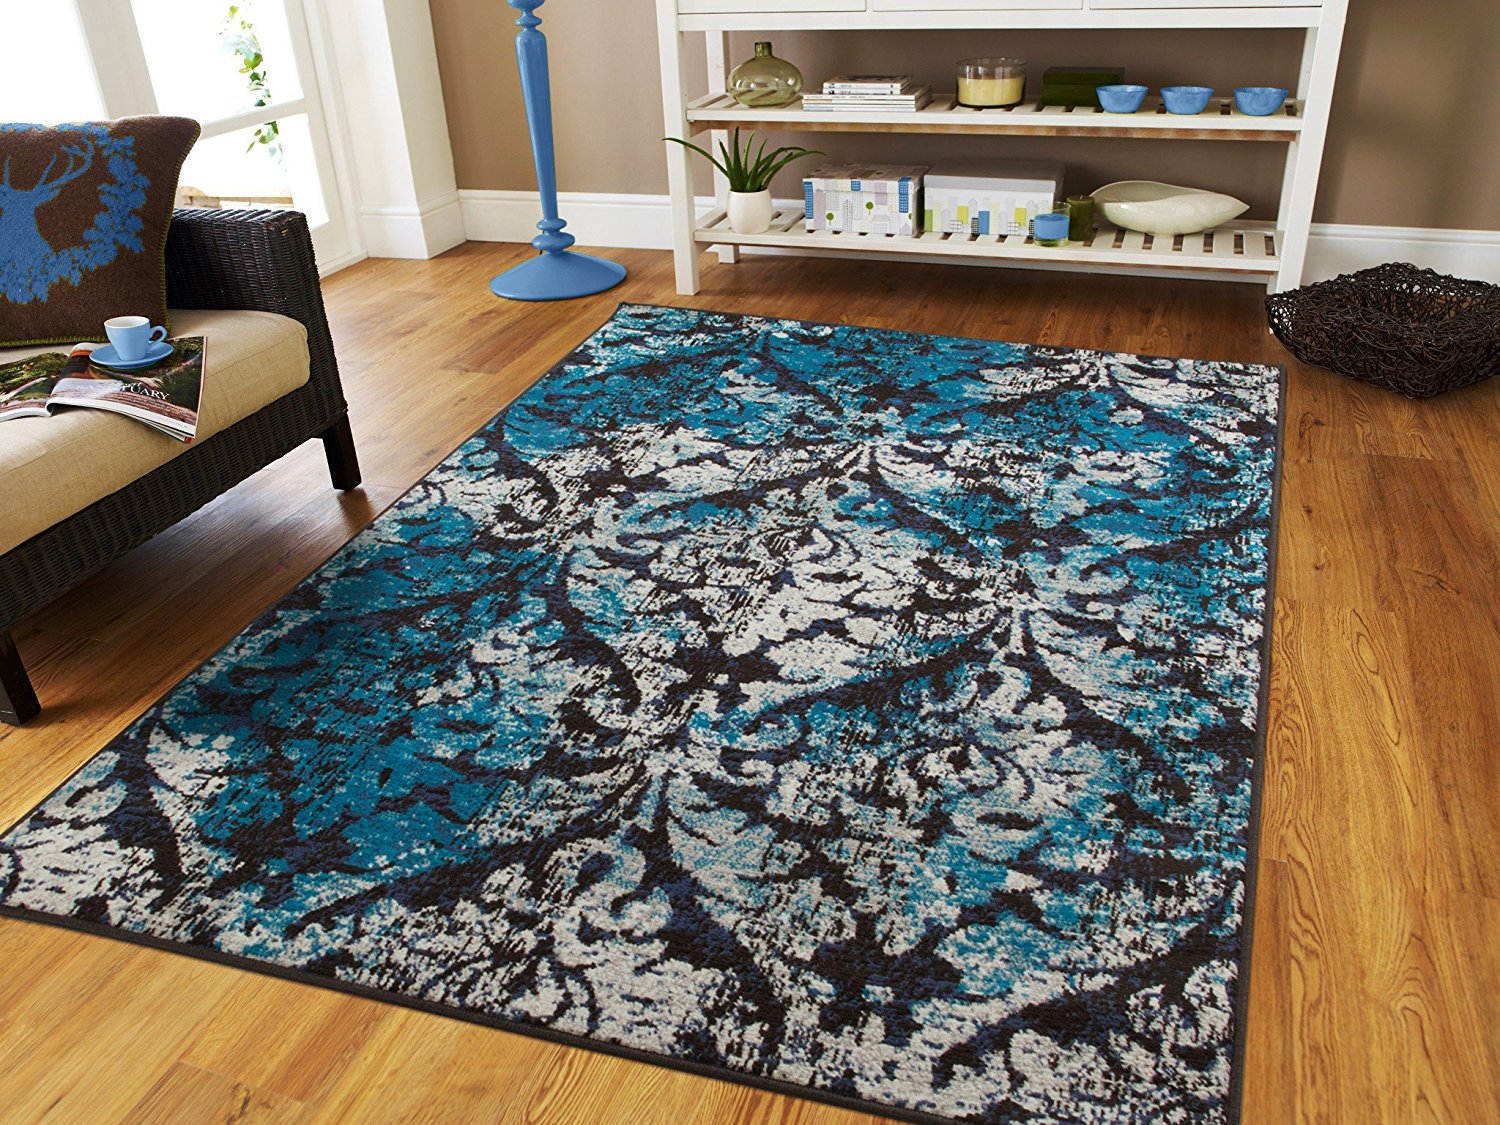 Luxury Modern Area Rugs On Clearance 5x8 Distressed 5x7 Rug For Dining Room Blue Black